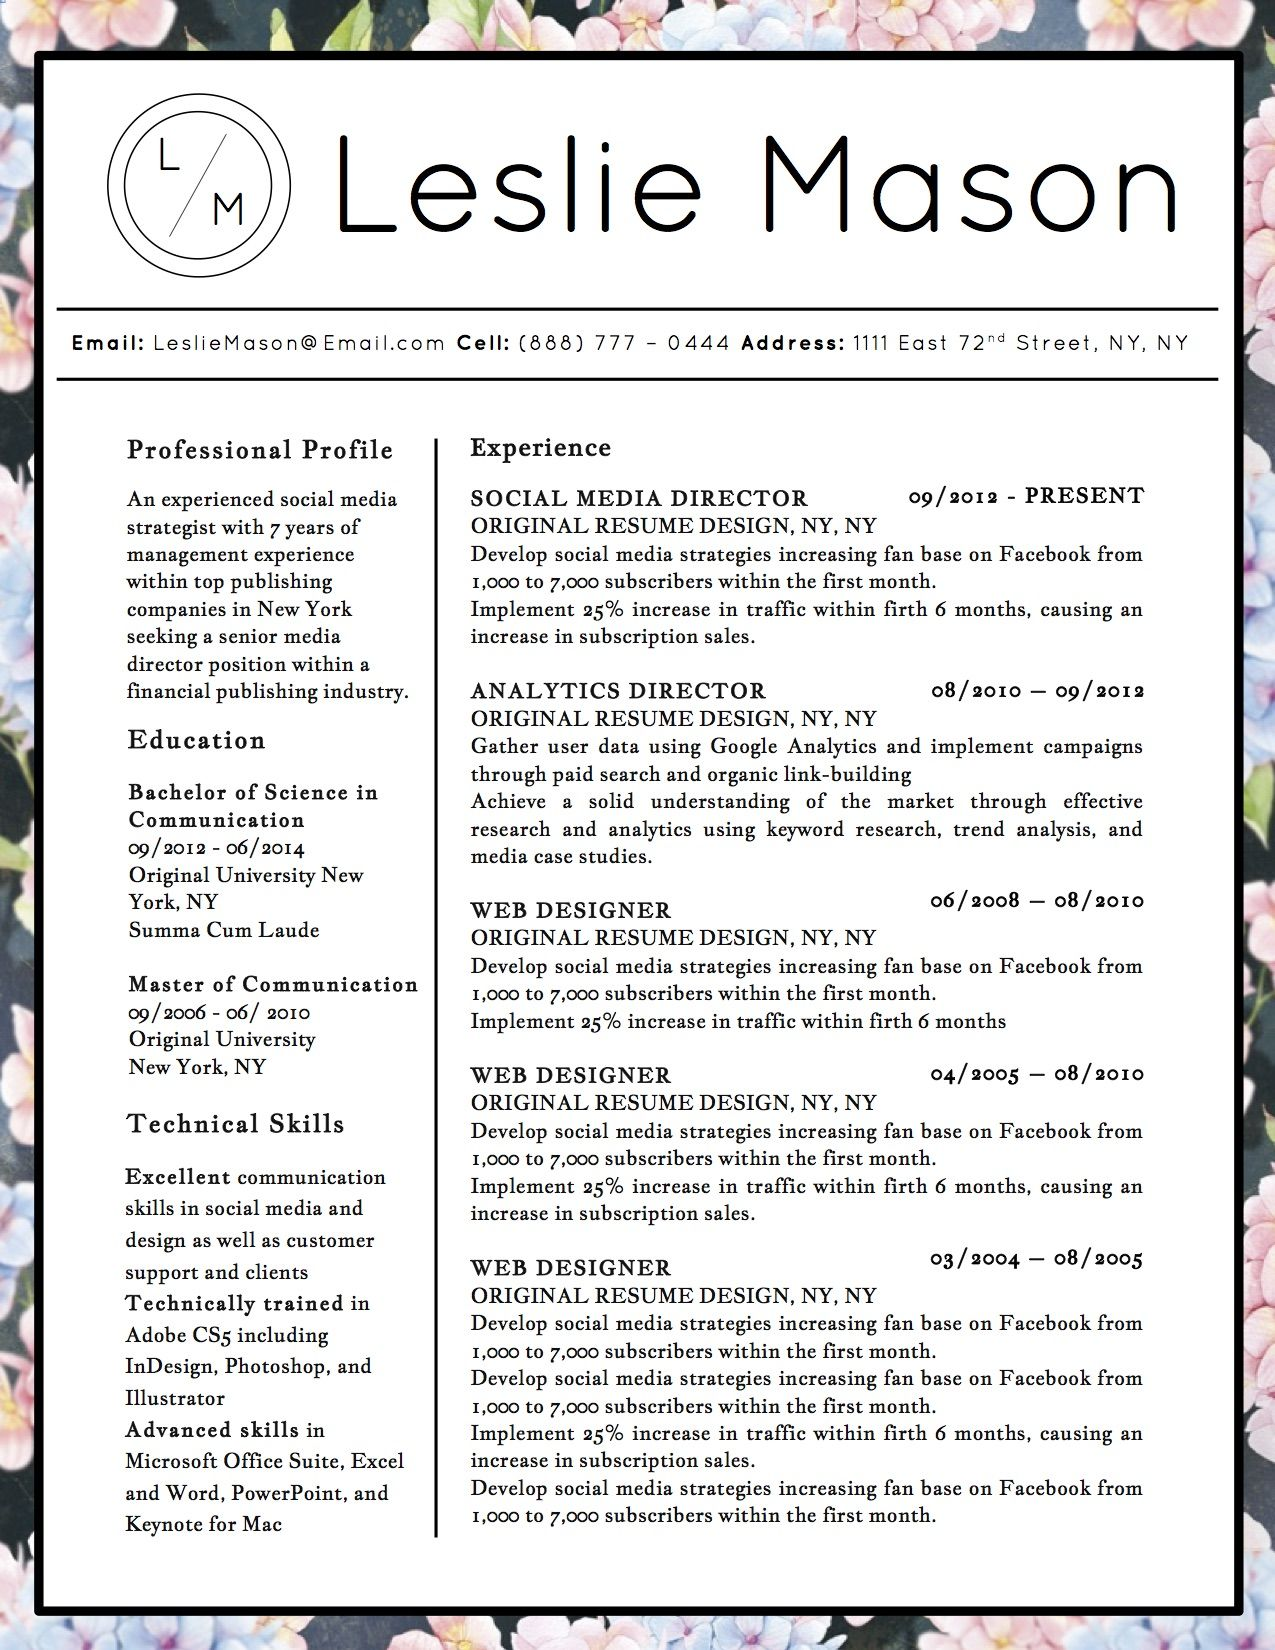 Beautiful resume template for Microsoft Word with 3 distinct styles ...